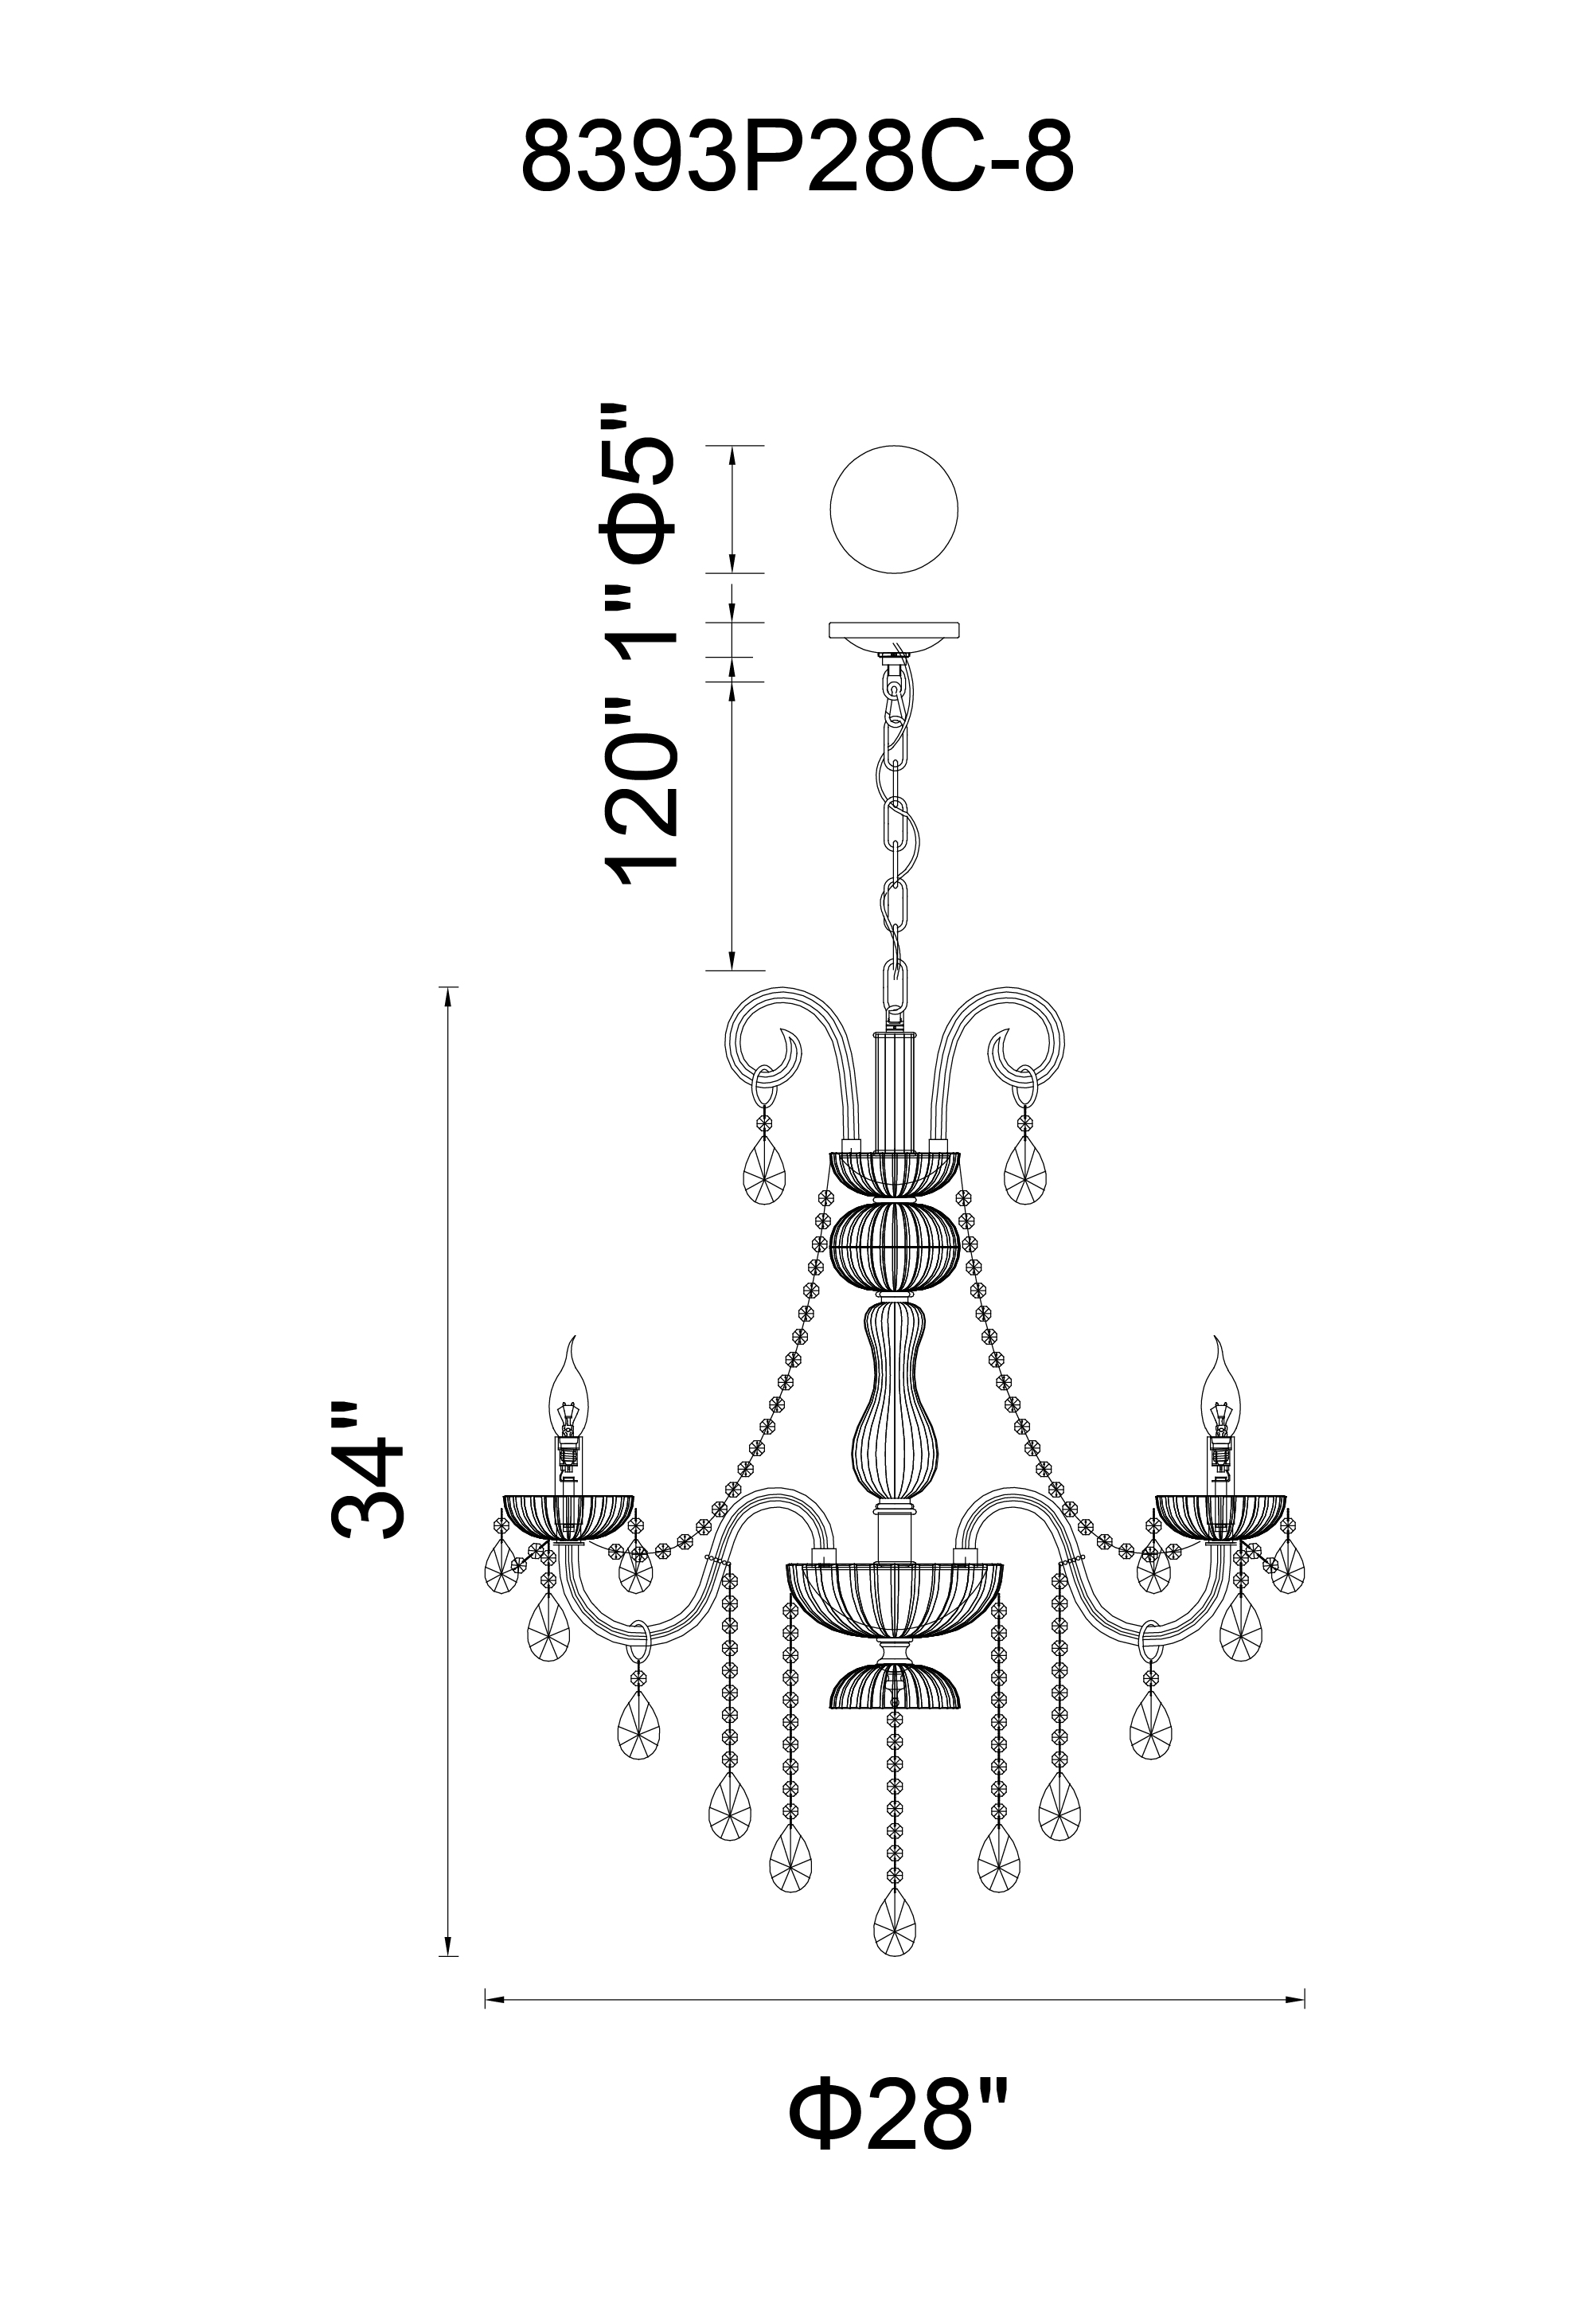 CWI Lighting Casper 8 Light Up Chandelier With Chrome Finish Model: 8393P28C-8 (COGNAC) Line Drawing